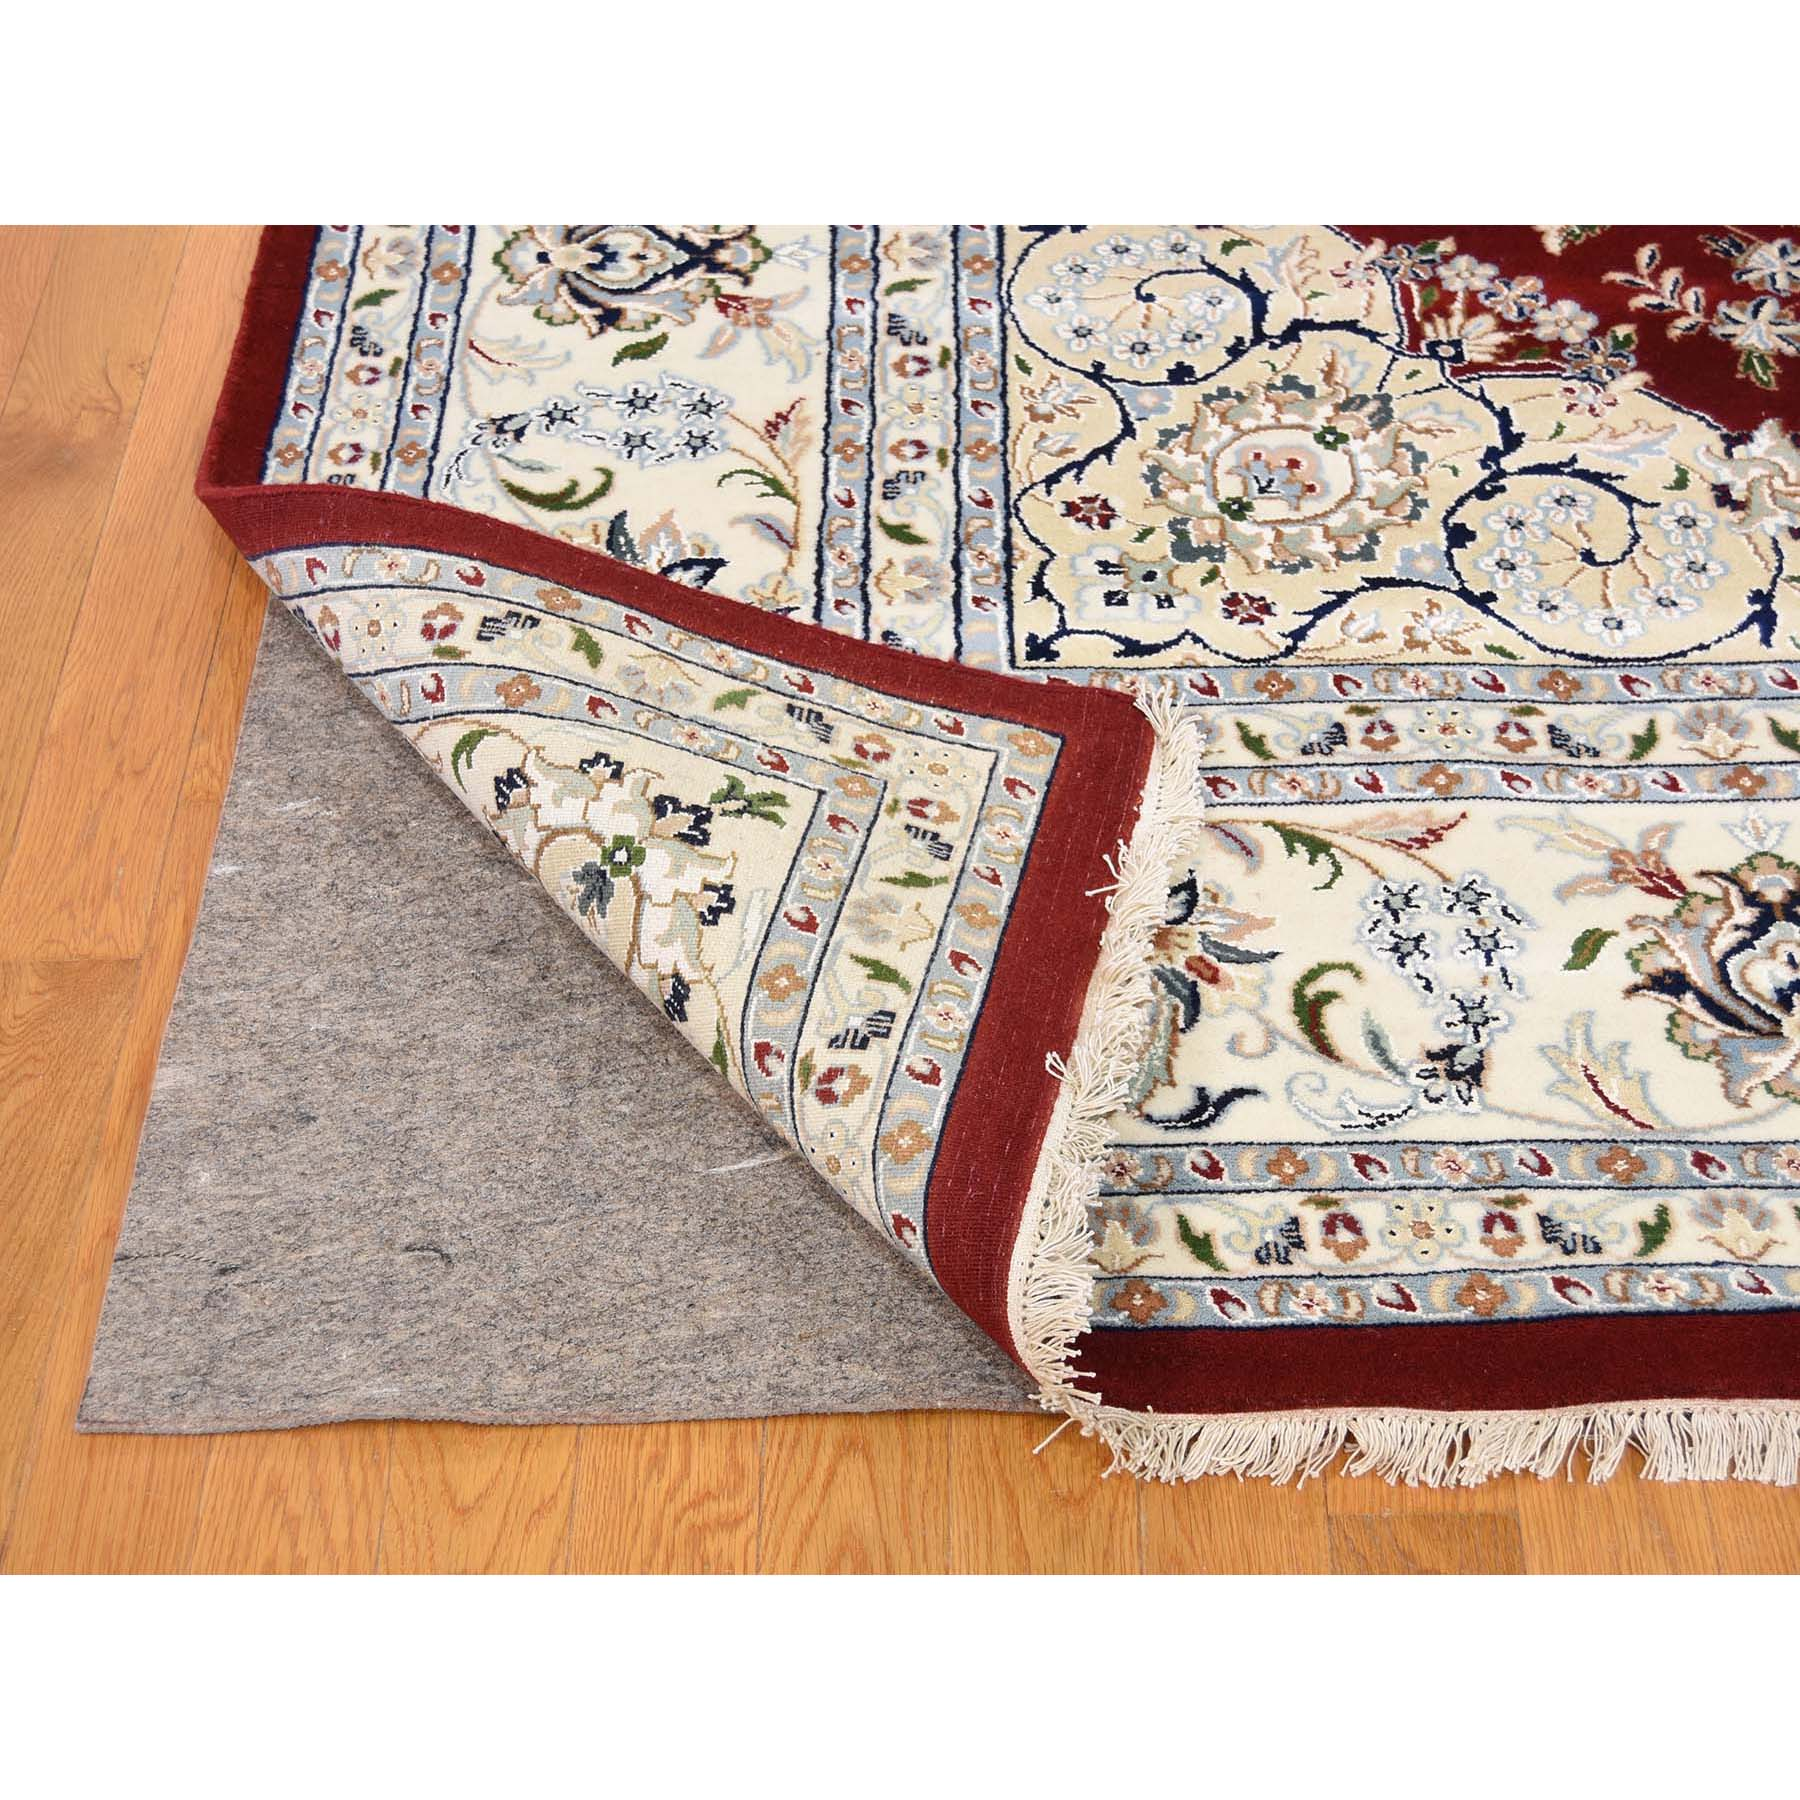 9-9 x14- 250 KPSI Red Wool and Silk Nain Hand Knotted Oriental Rug